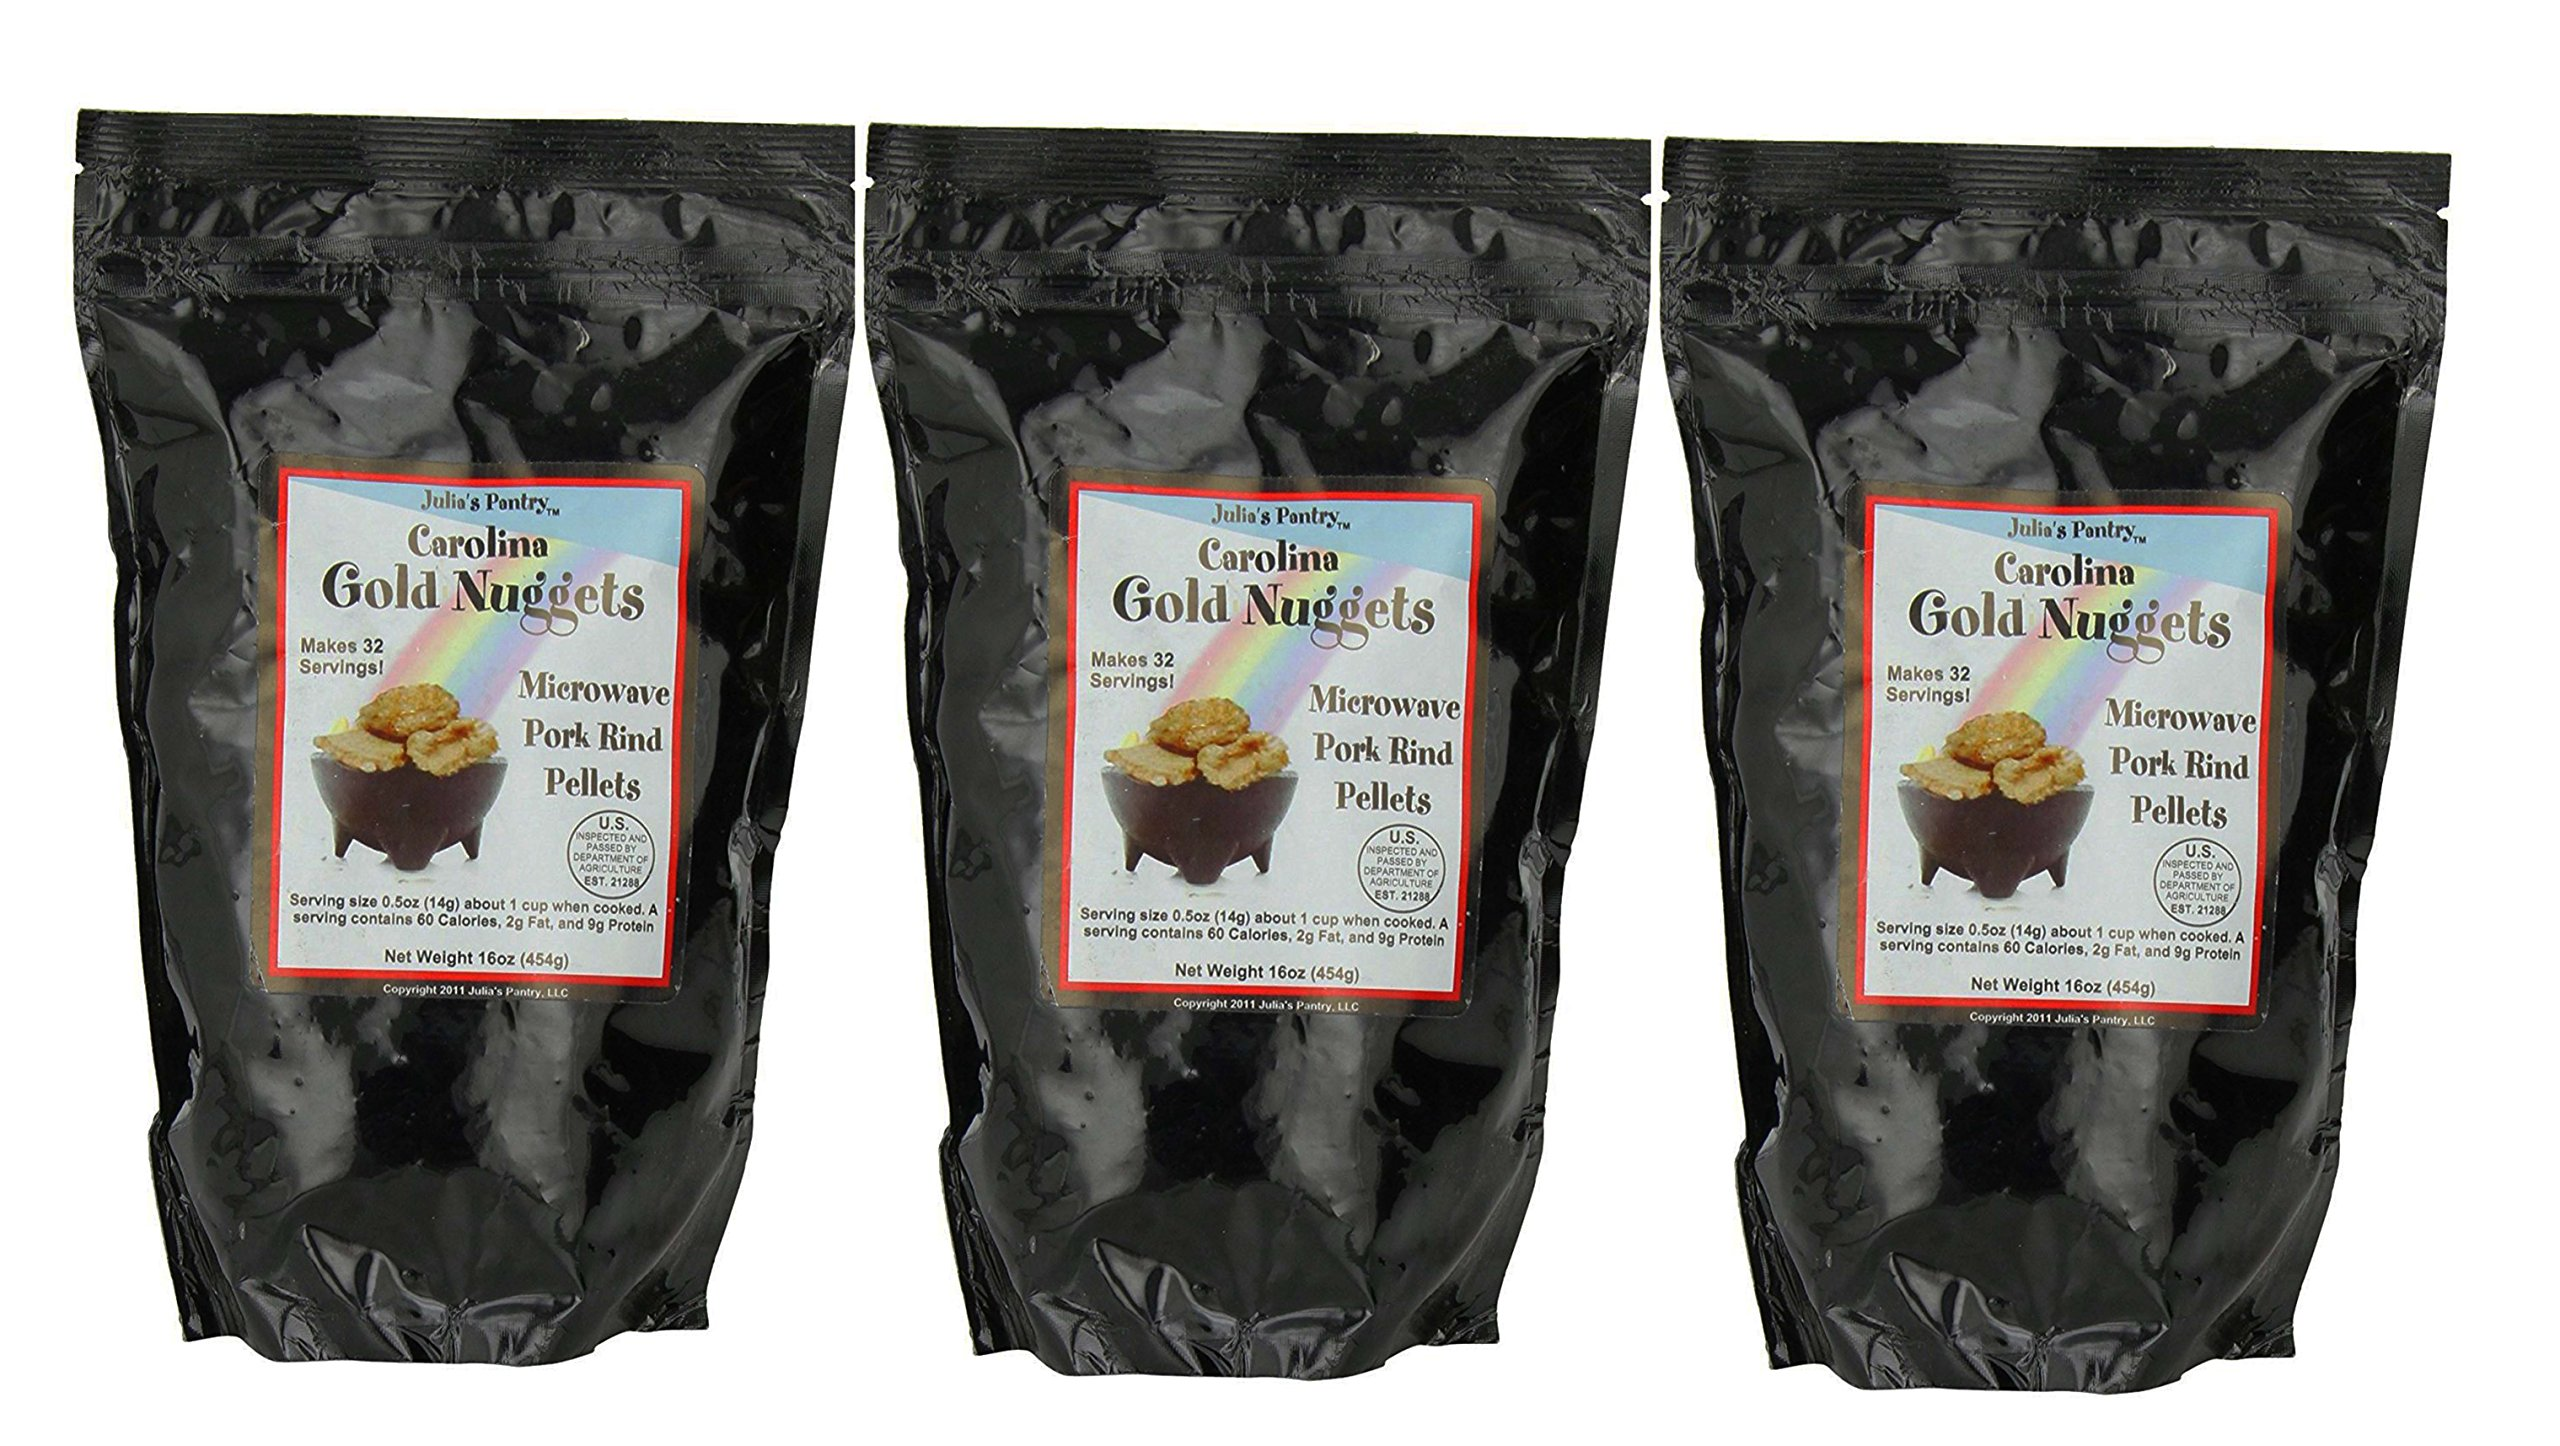 Carolina Gold Nuggets 3 - 1 Lb Packages